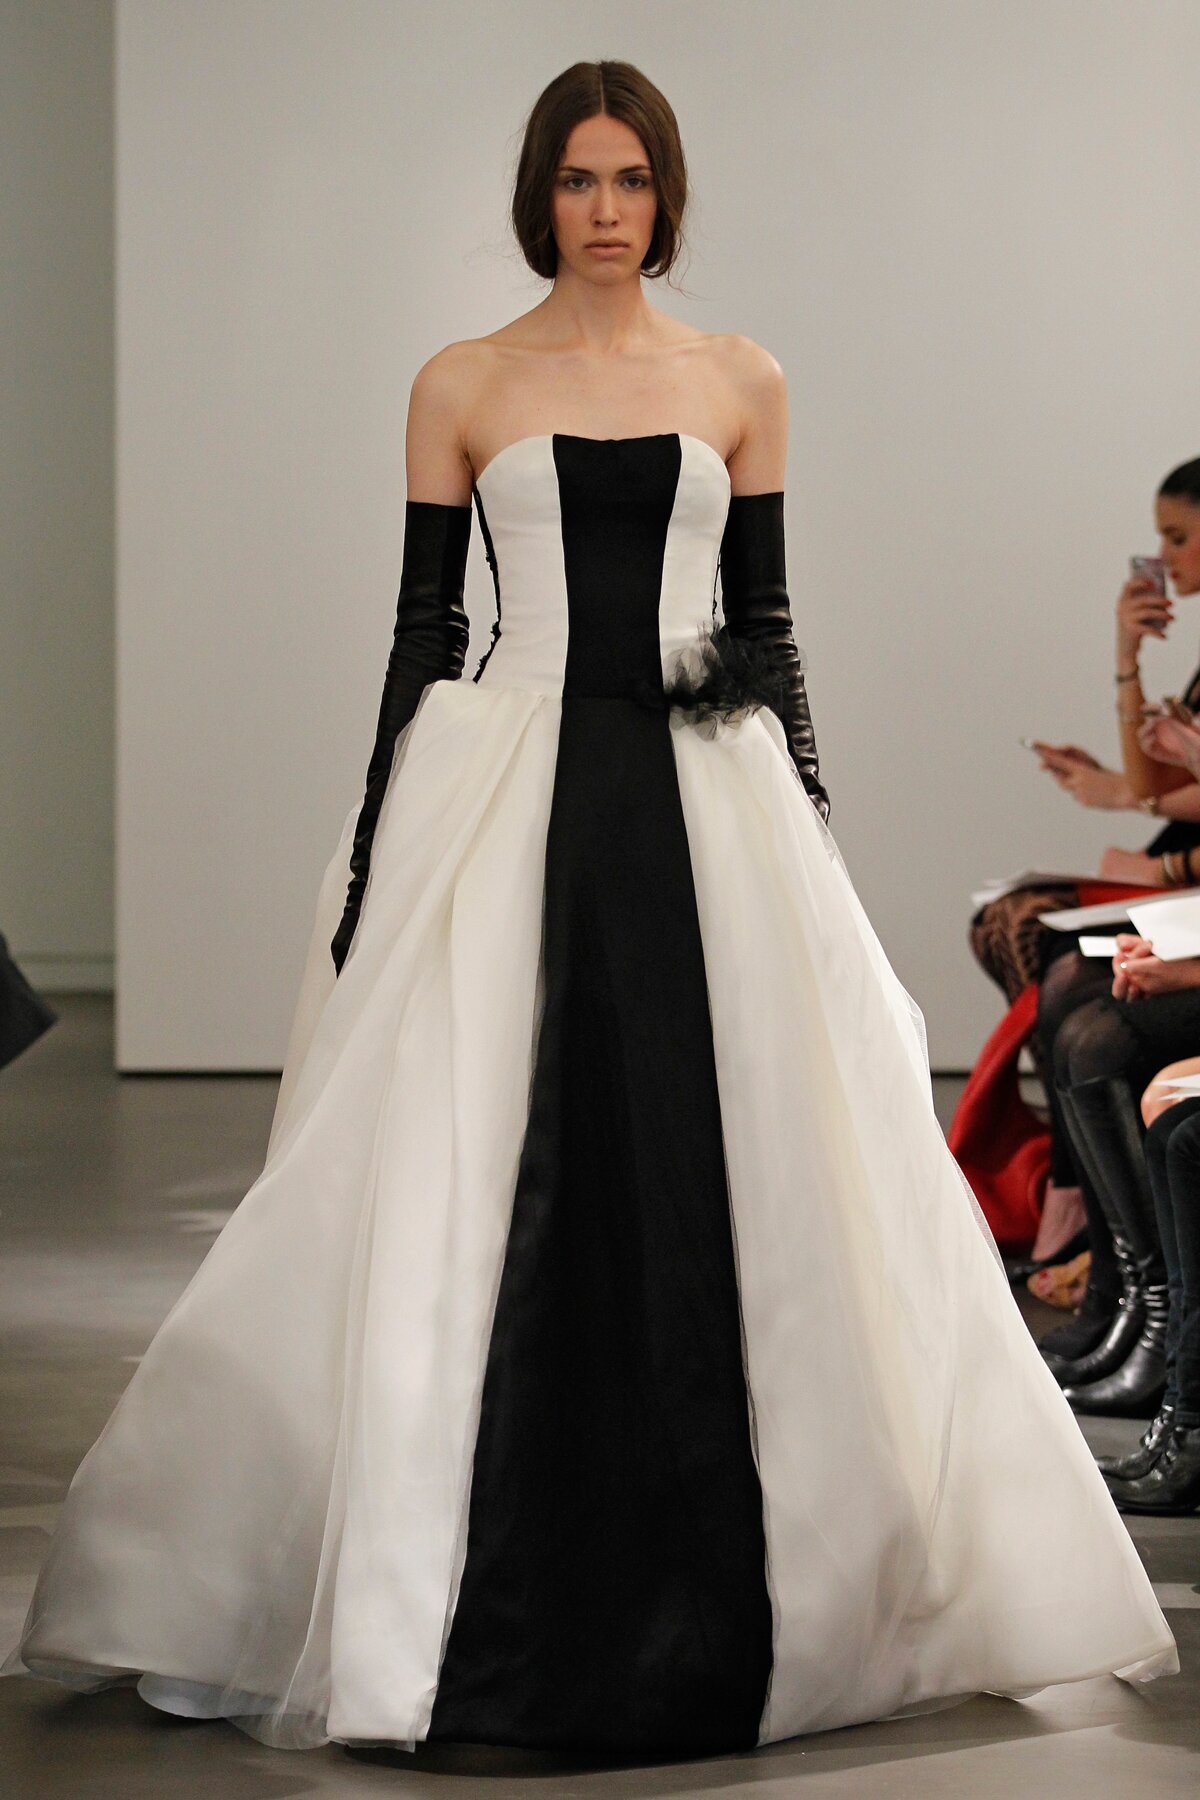 Vera wang wedding dresses patterns pictures ideas guide to vera wang wedding dresses patterns photo 1 junglespirit Image collections